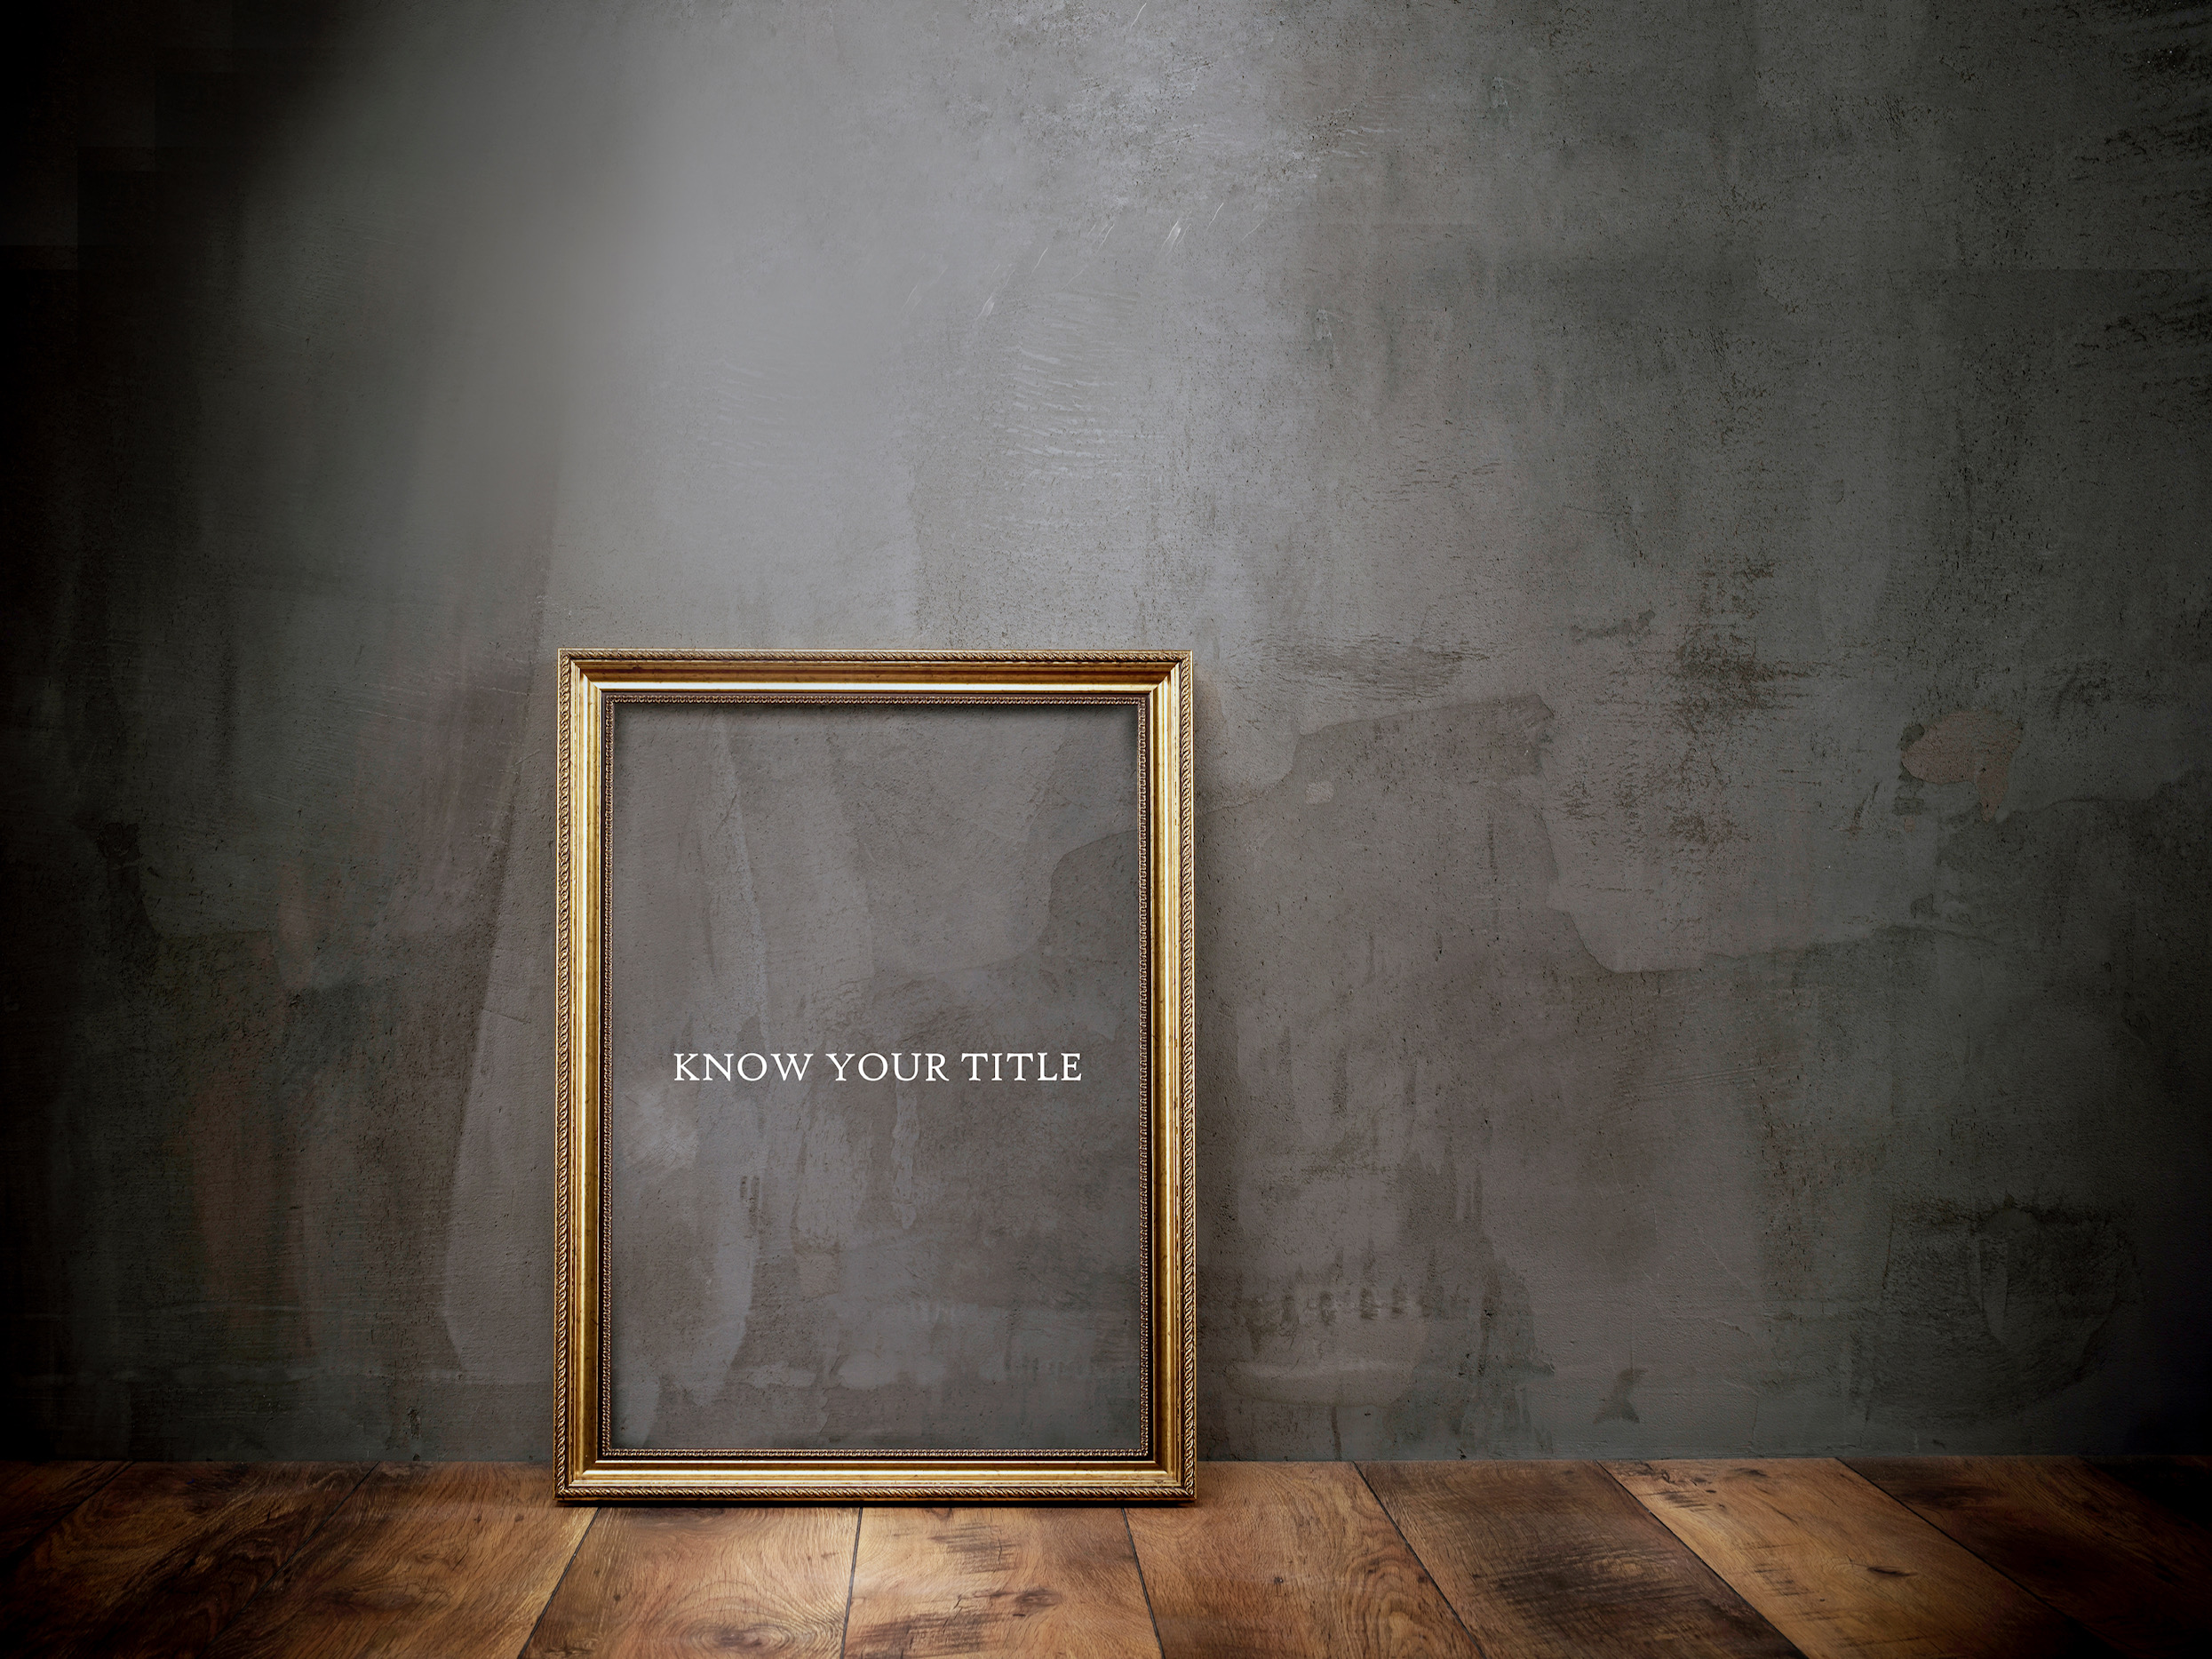 ARIS Art Insurer Launches New Risk-Assessment Product 'Know Your Title'